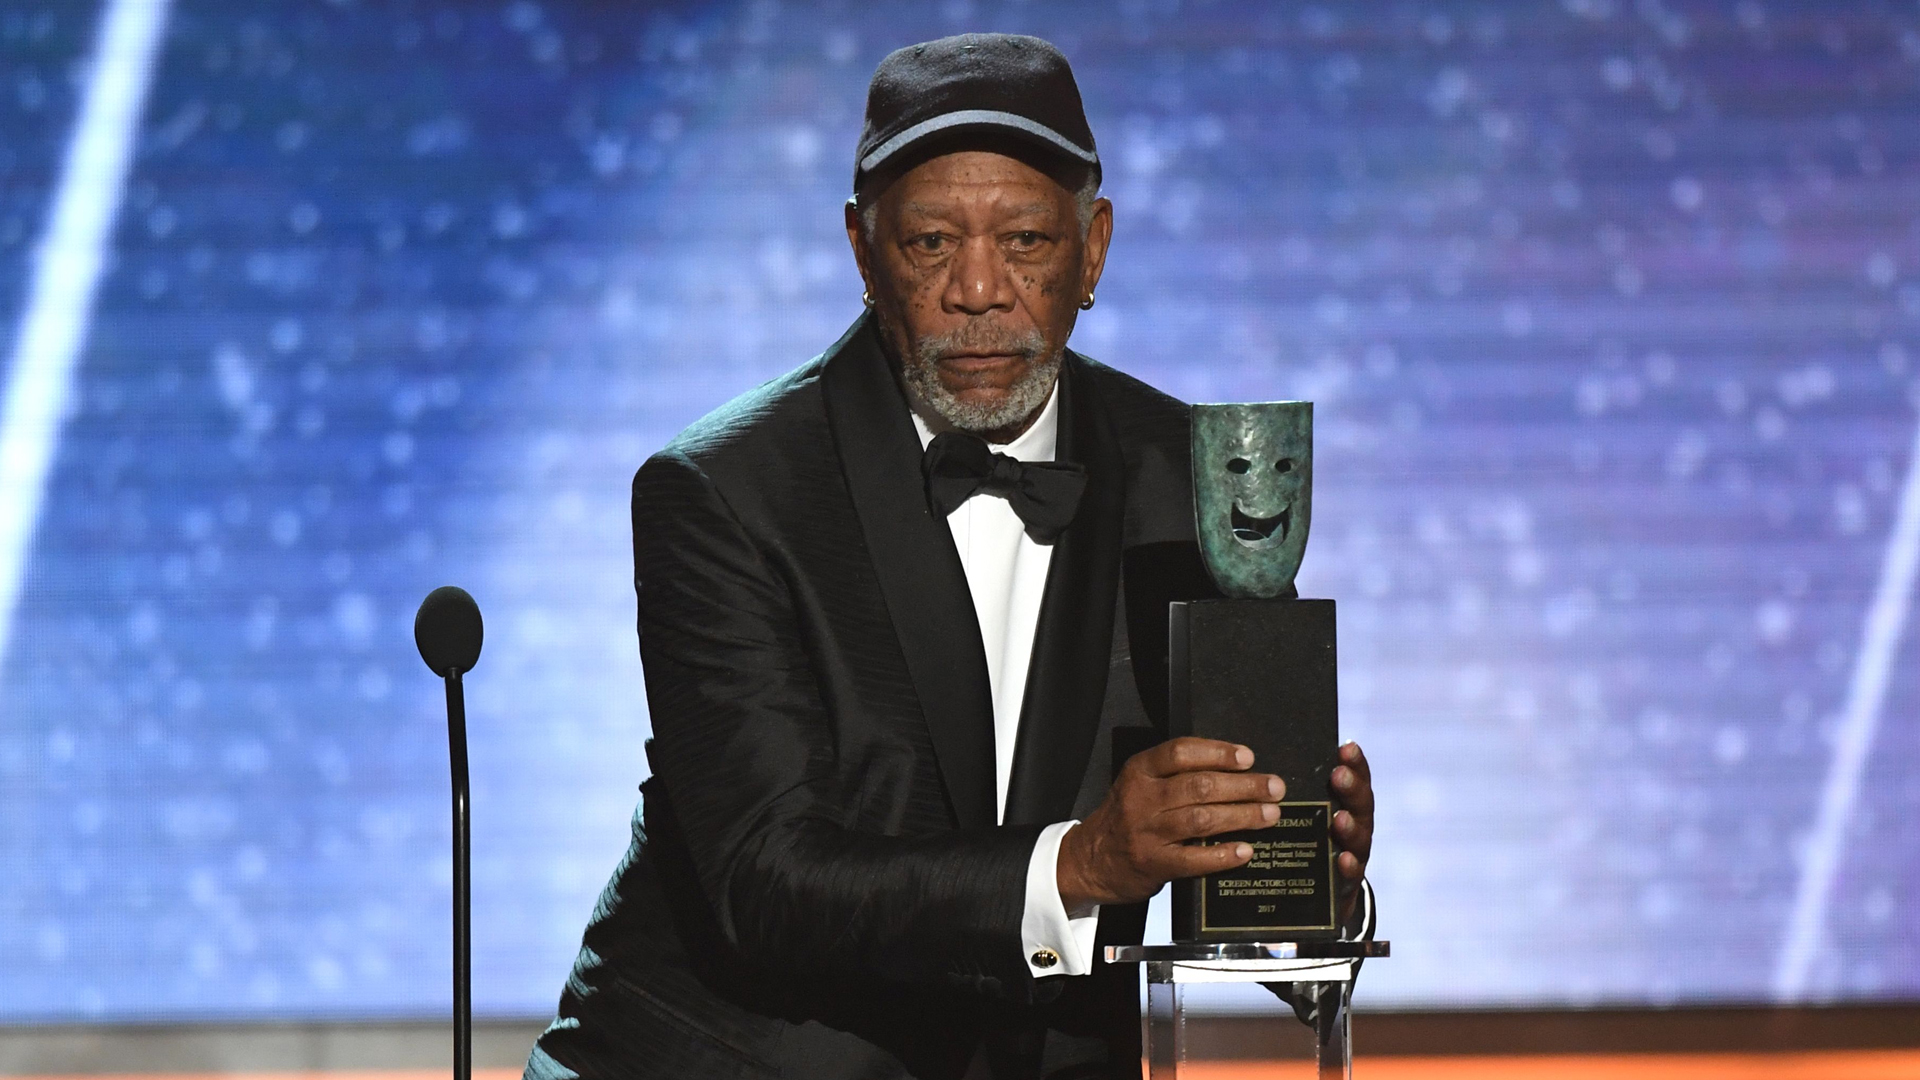 Morgan Freeman accepts the Life Achievement Award onstage during the 24th Annual Screen Actors Guild Awards show at The Shrine Auditorium on January 21, 2018 in Los Angeles, California. / AFP PHOTO / Mark RALSTON (Photo credit should read MARK RALSTON/AFP/Getty Images)